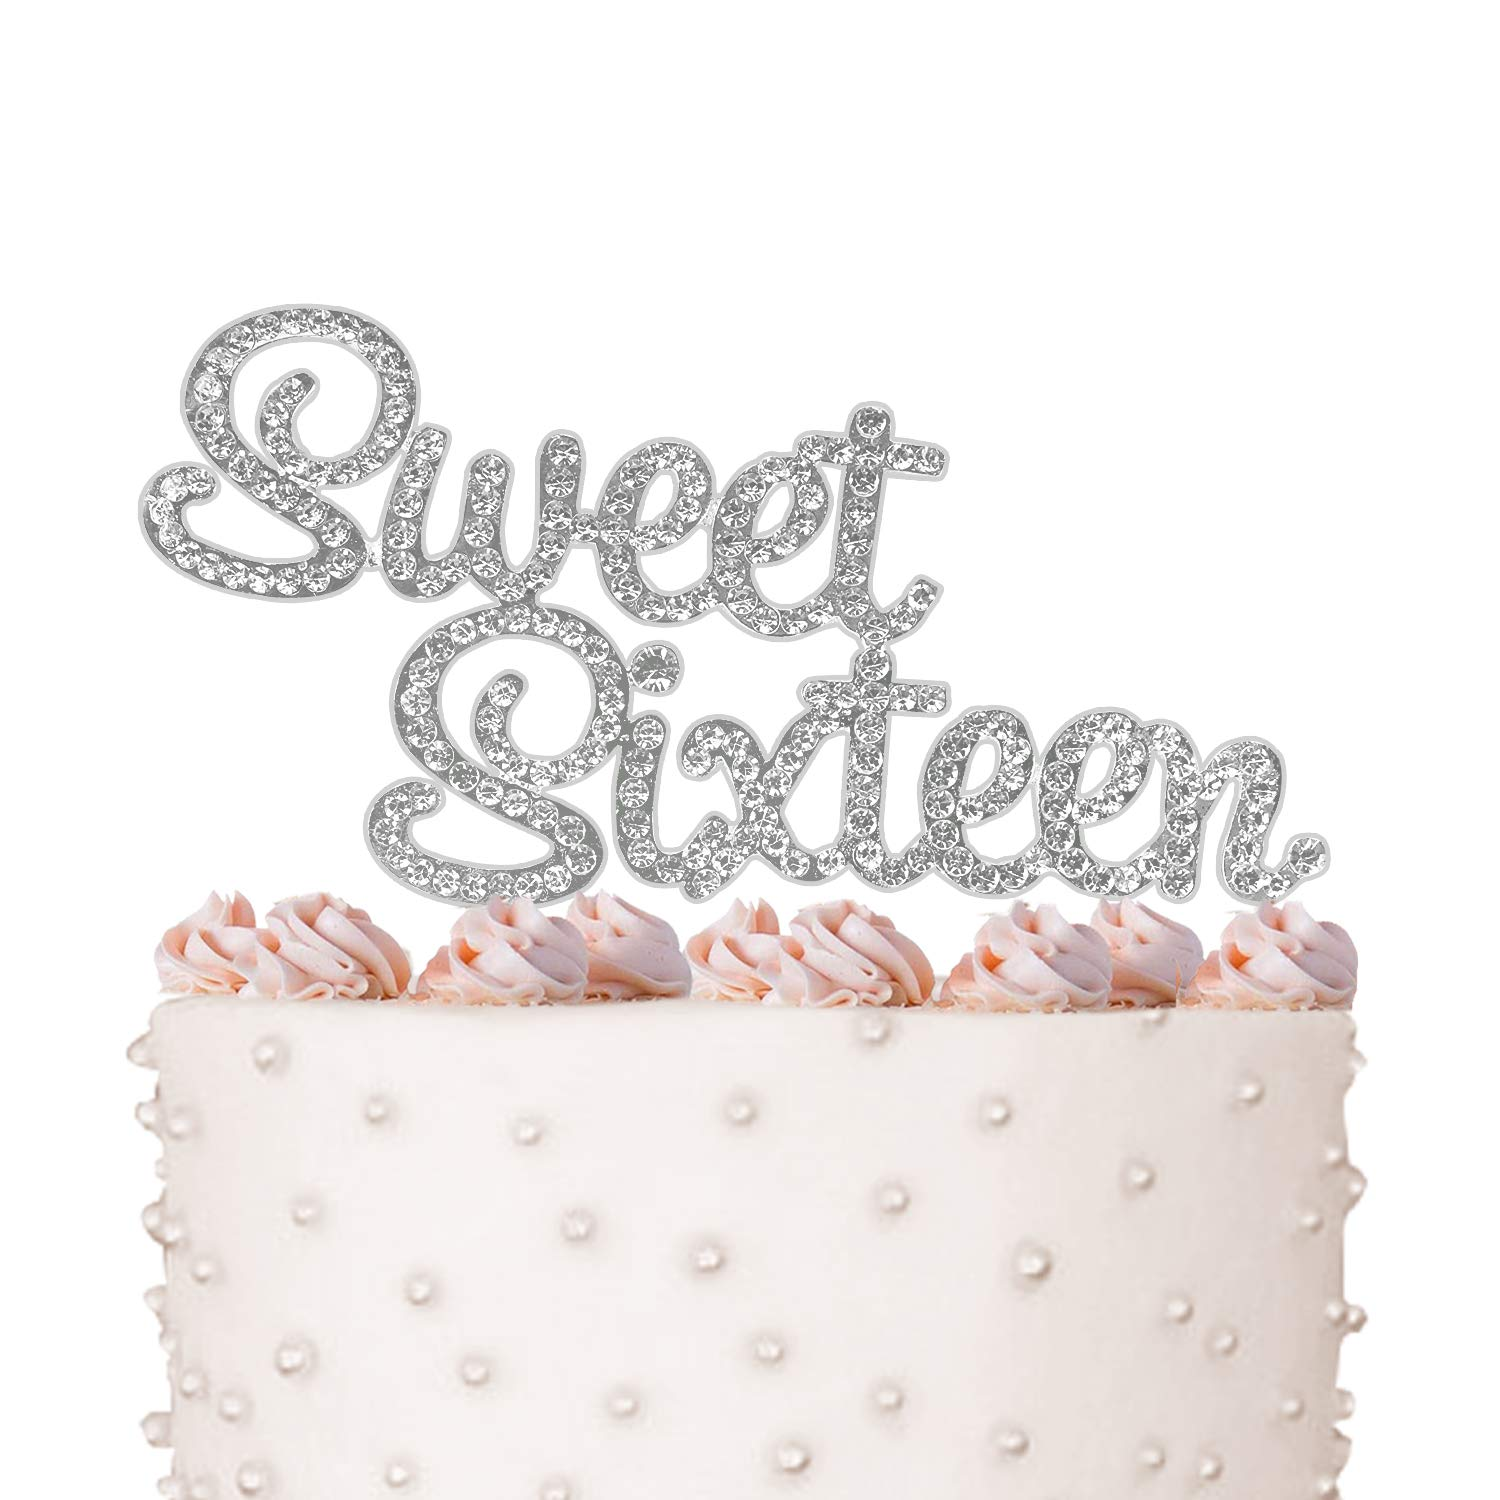 Sweet Sixteen, Birthday Cake Topper, Crystal Rhinestones on Silver Metal, Party Decorations, Favors